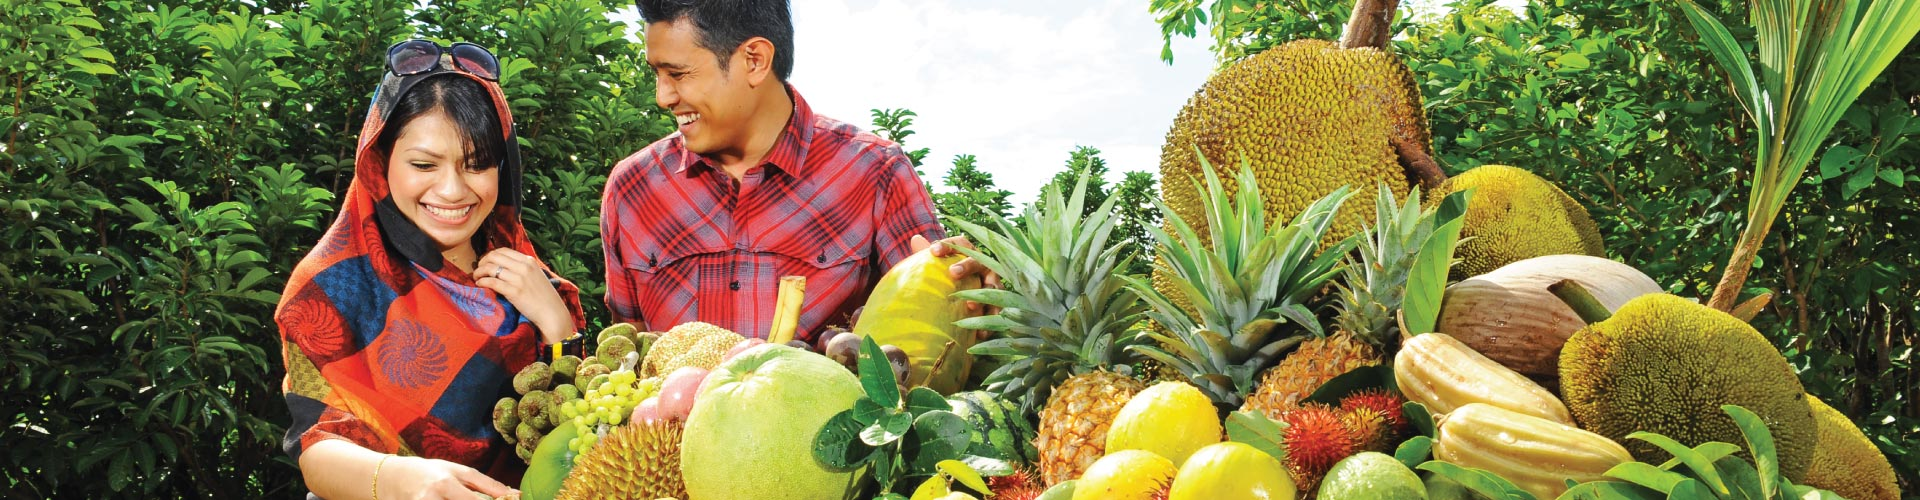 Penang Orchard & Durian Tasting Tour